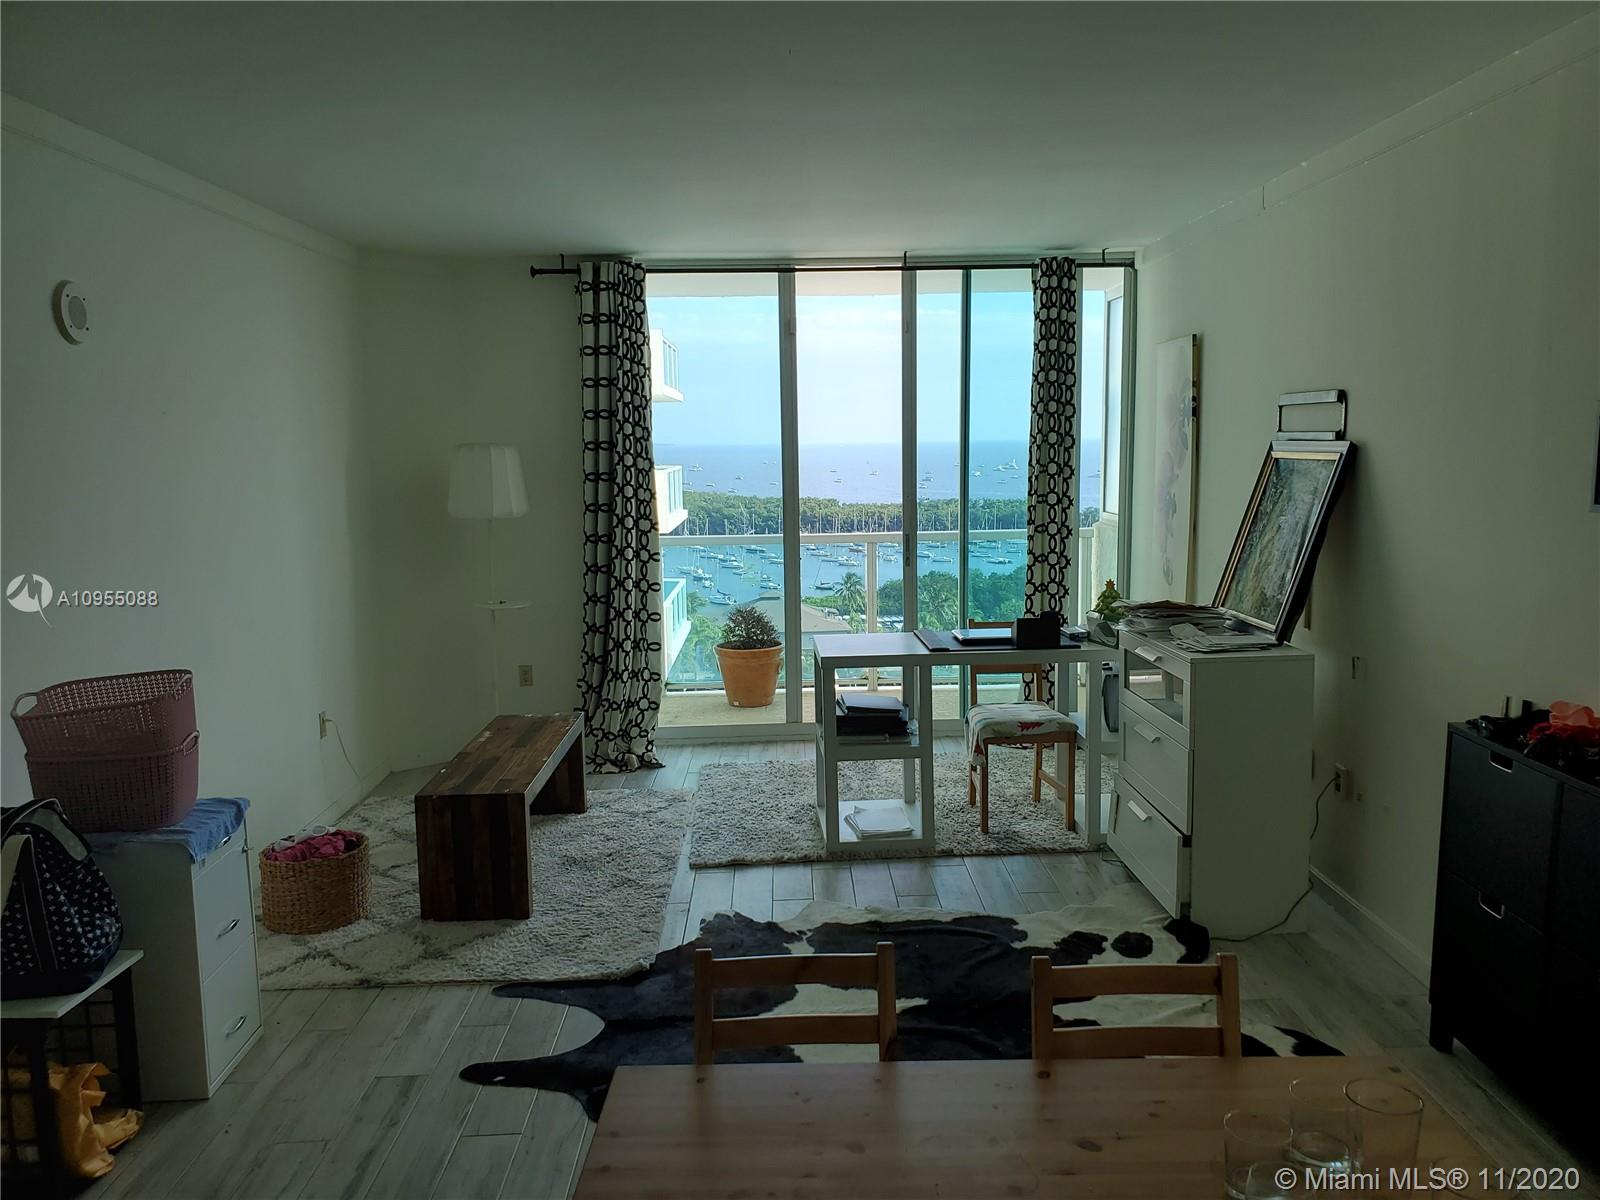 Arya in beautiful Coconut Grove residential unit available. Unit has stunning bay and pool views. Excellent opportunity as an Investment property, vacation rental and Airbnb. Hotel management Program available for unit owners.